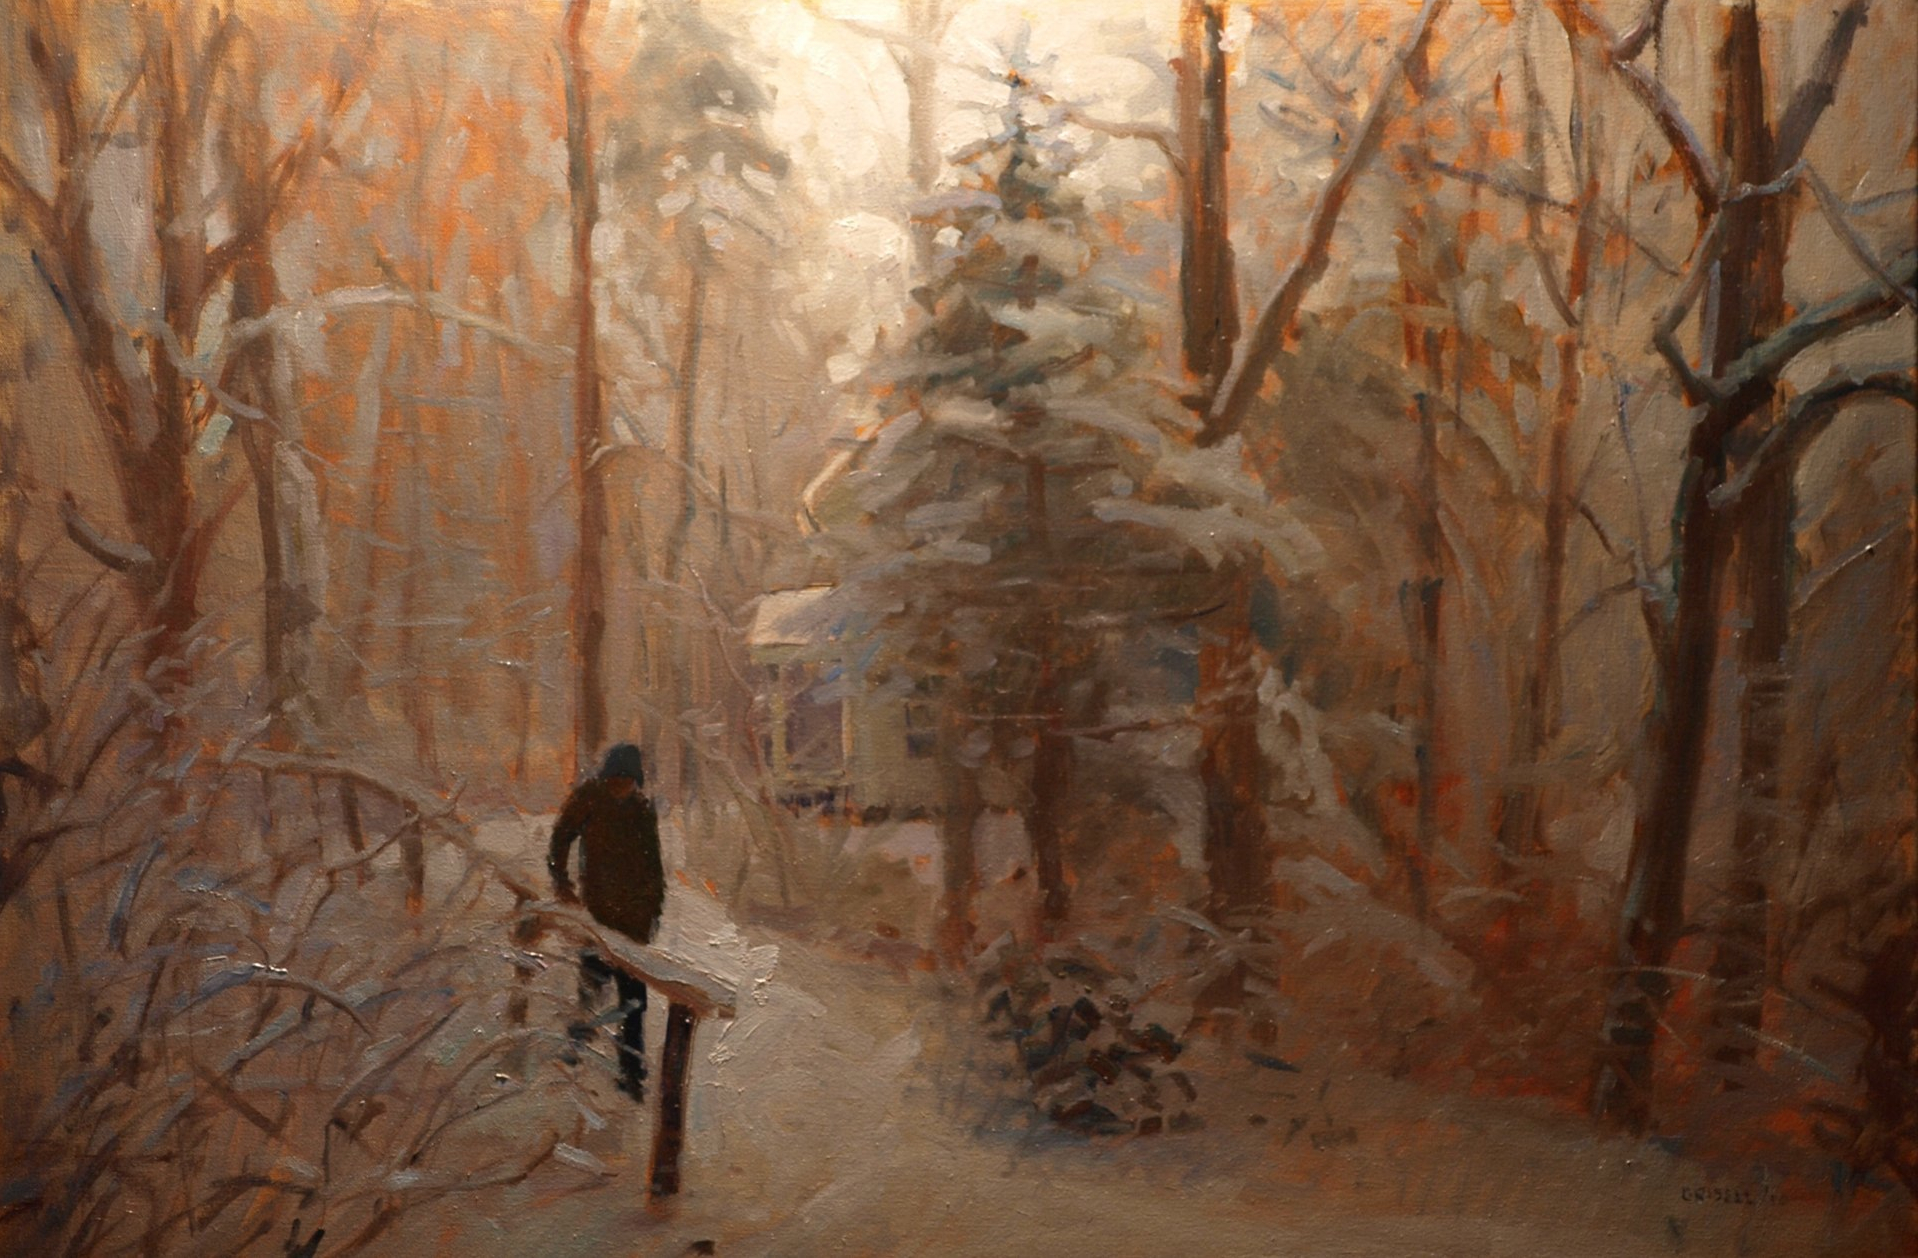 Snow and Path, Oil on Canvas, 24 x 36 Inches, by Susan Grisell, $1200